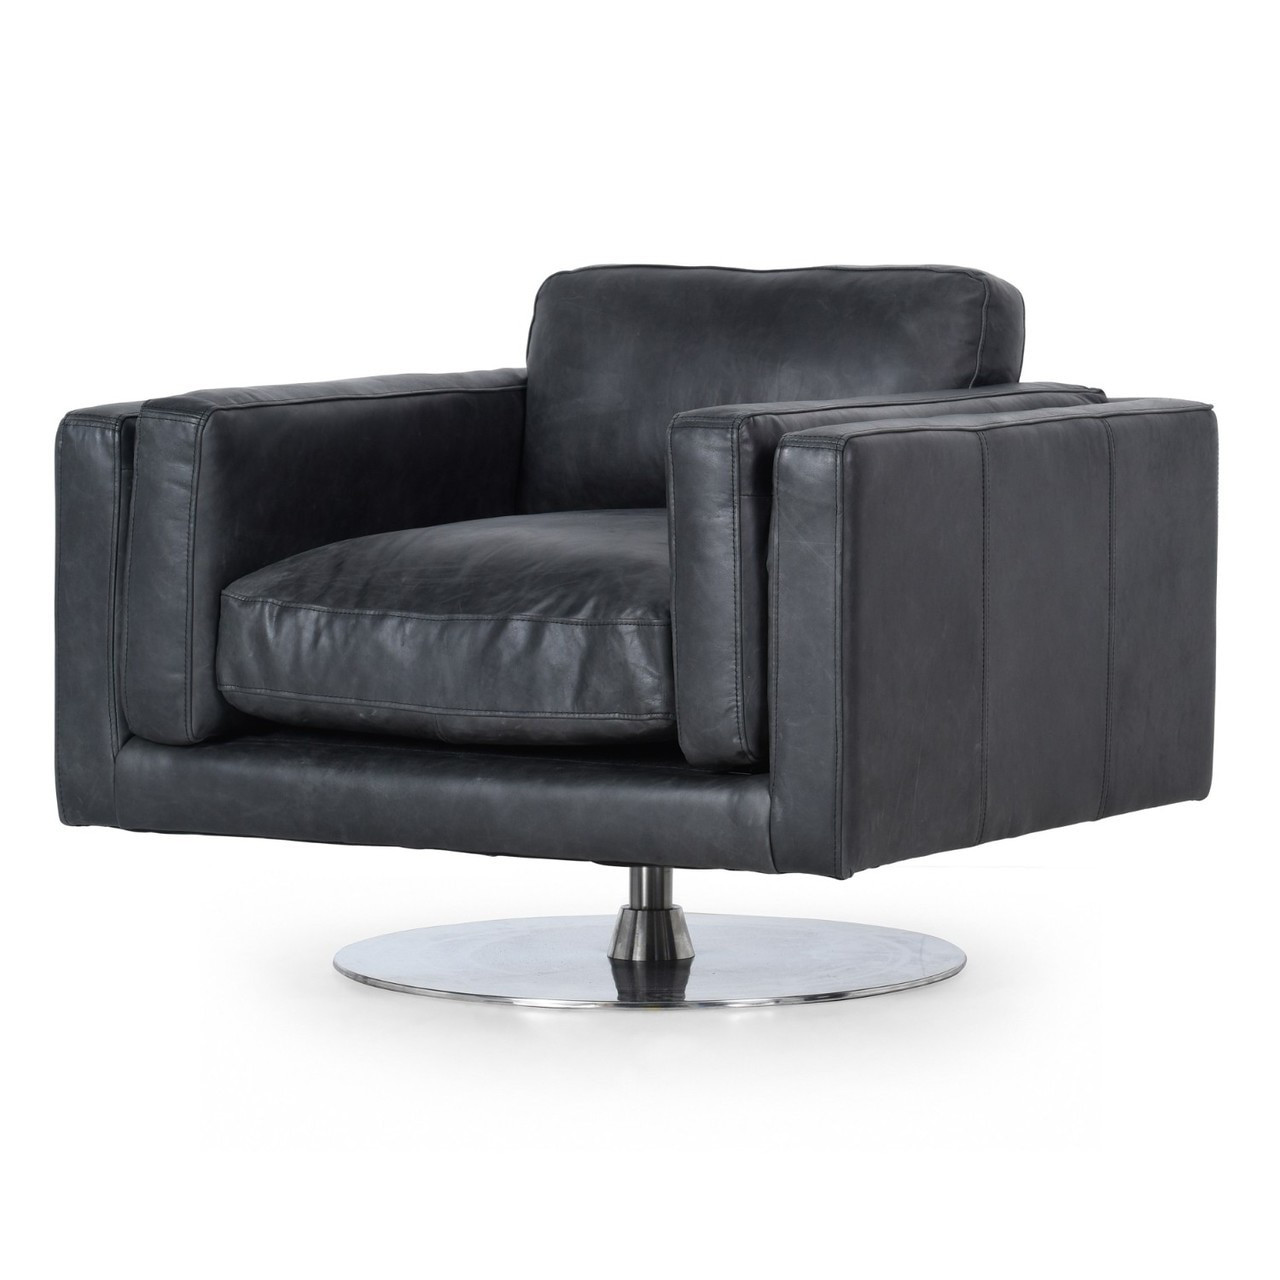 Outstanding Locke Modern Ebony Black Leather Swivel Chair Evergreenethics Interior Chair Design Evergreenethicsorg